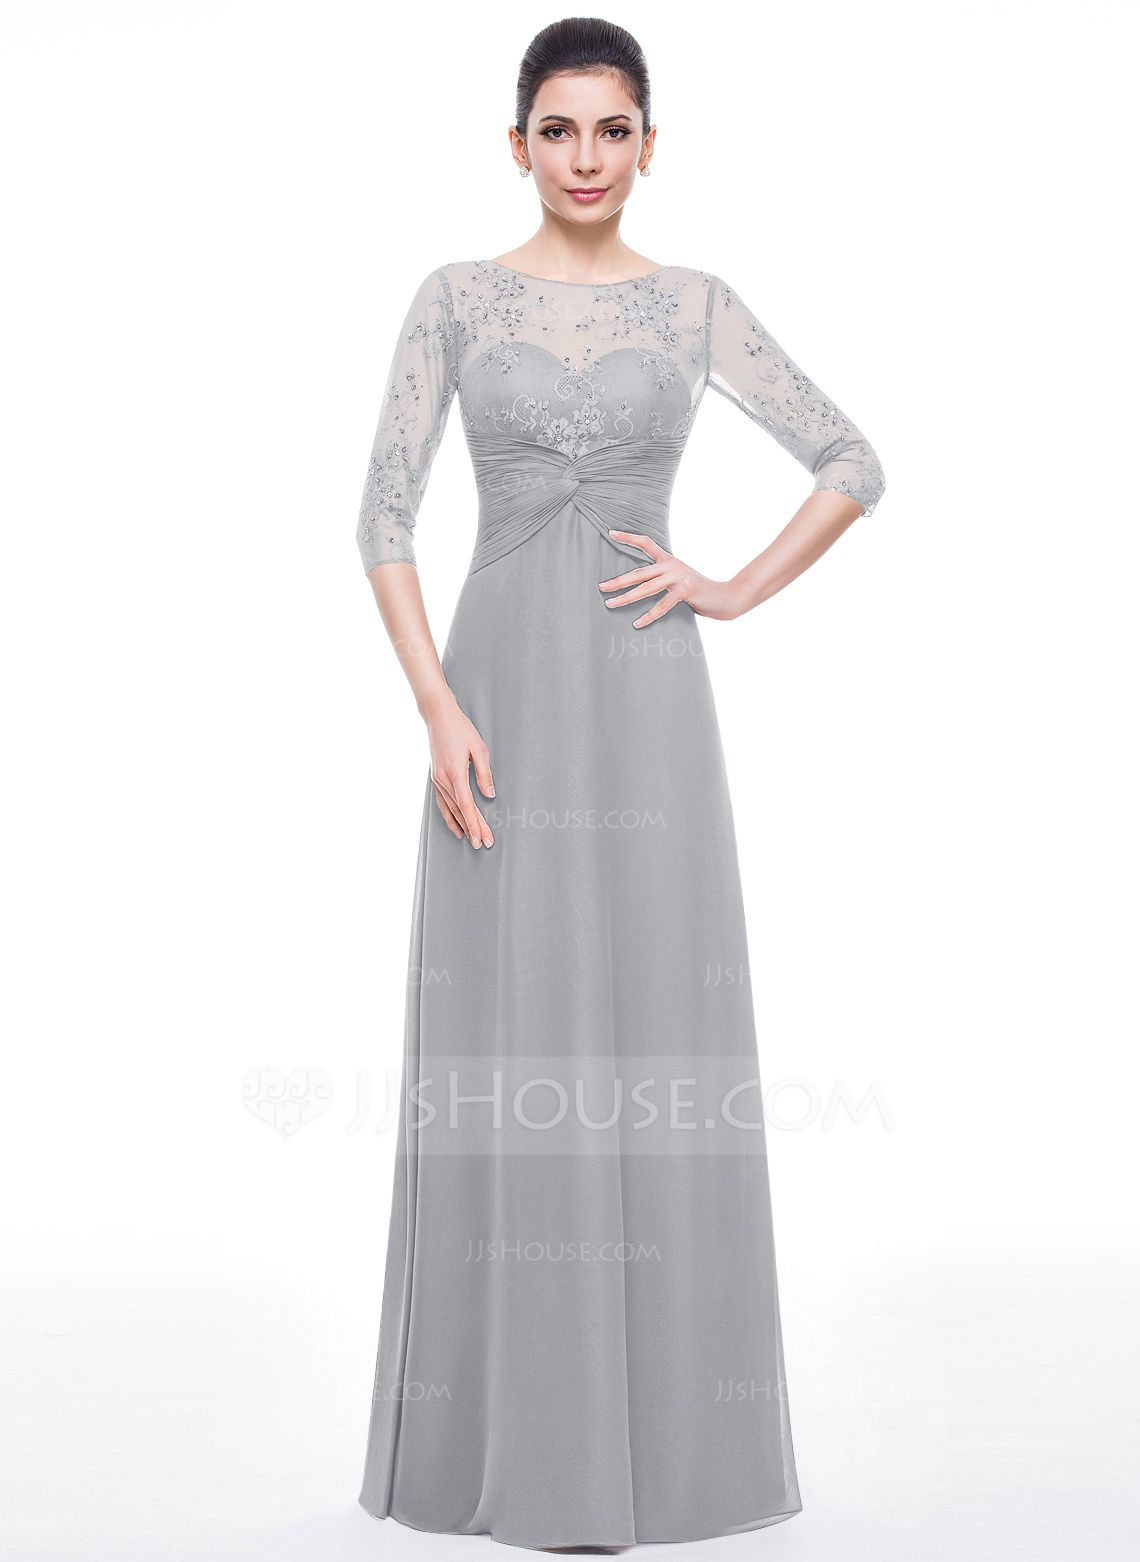 Alineprincess scoop neck floorlength chiffon lace mother of the